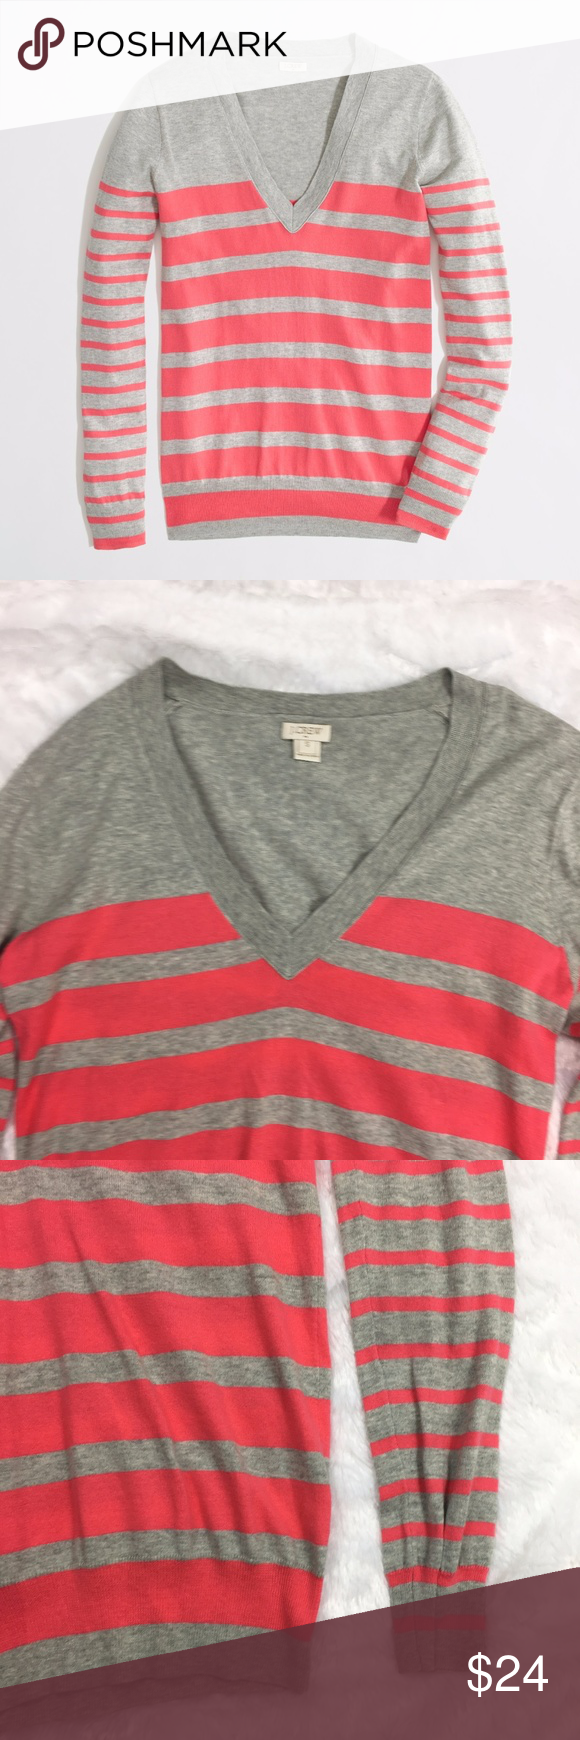 J. Crew Sweater Size S Double Stripe V-Neck Gray Brand: J. Crew Size: Small Material: Please see picture of tag in listing Condition: Previously owned, excellent used condition Measurements: Length: 26 Bust 19 Inventory id:1249 Other Info:v-neck J. Crew Sweaters V-Necks